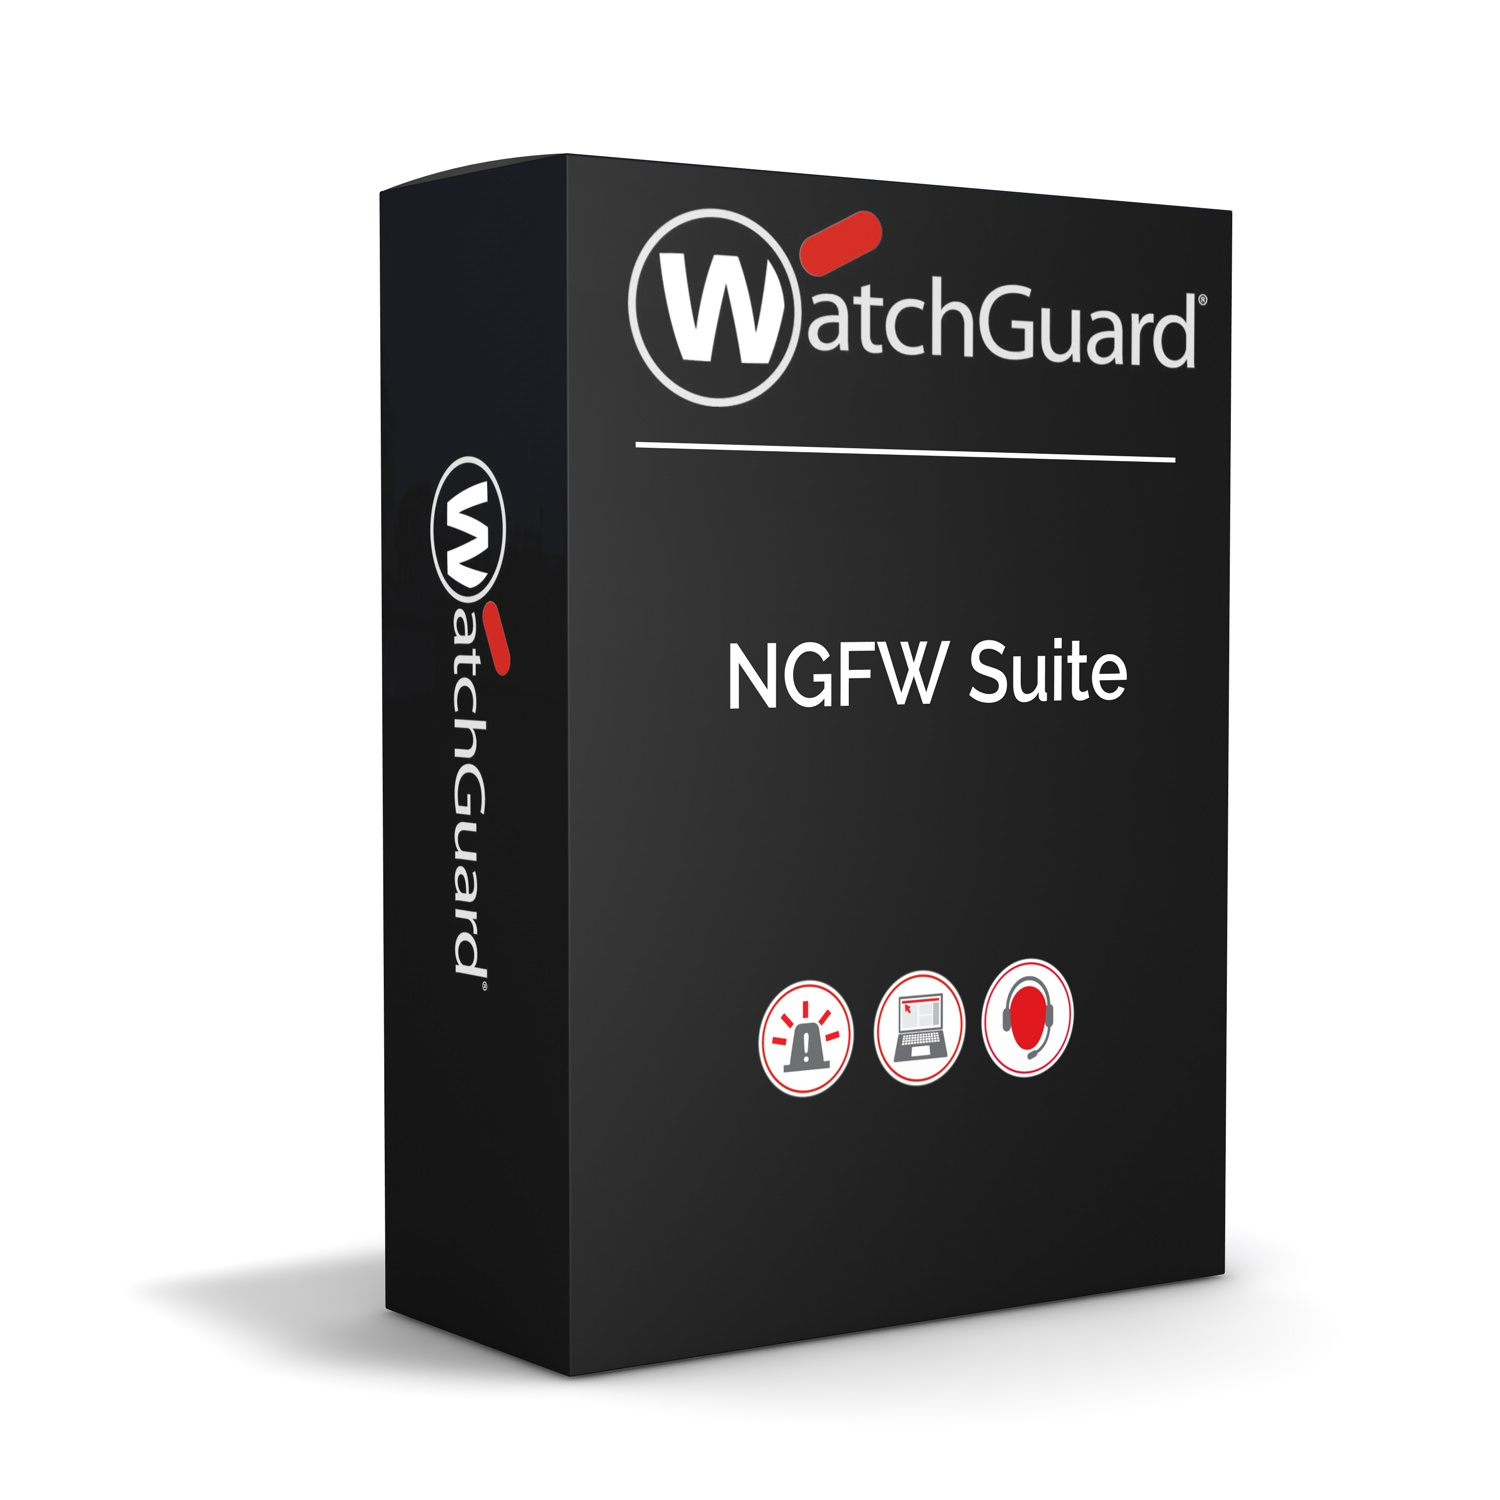 WatchGuard NGFW Suite Renewal/Upgrade 1-yr for Firebox M5600